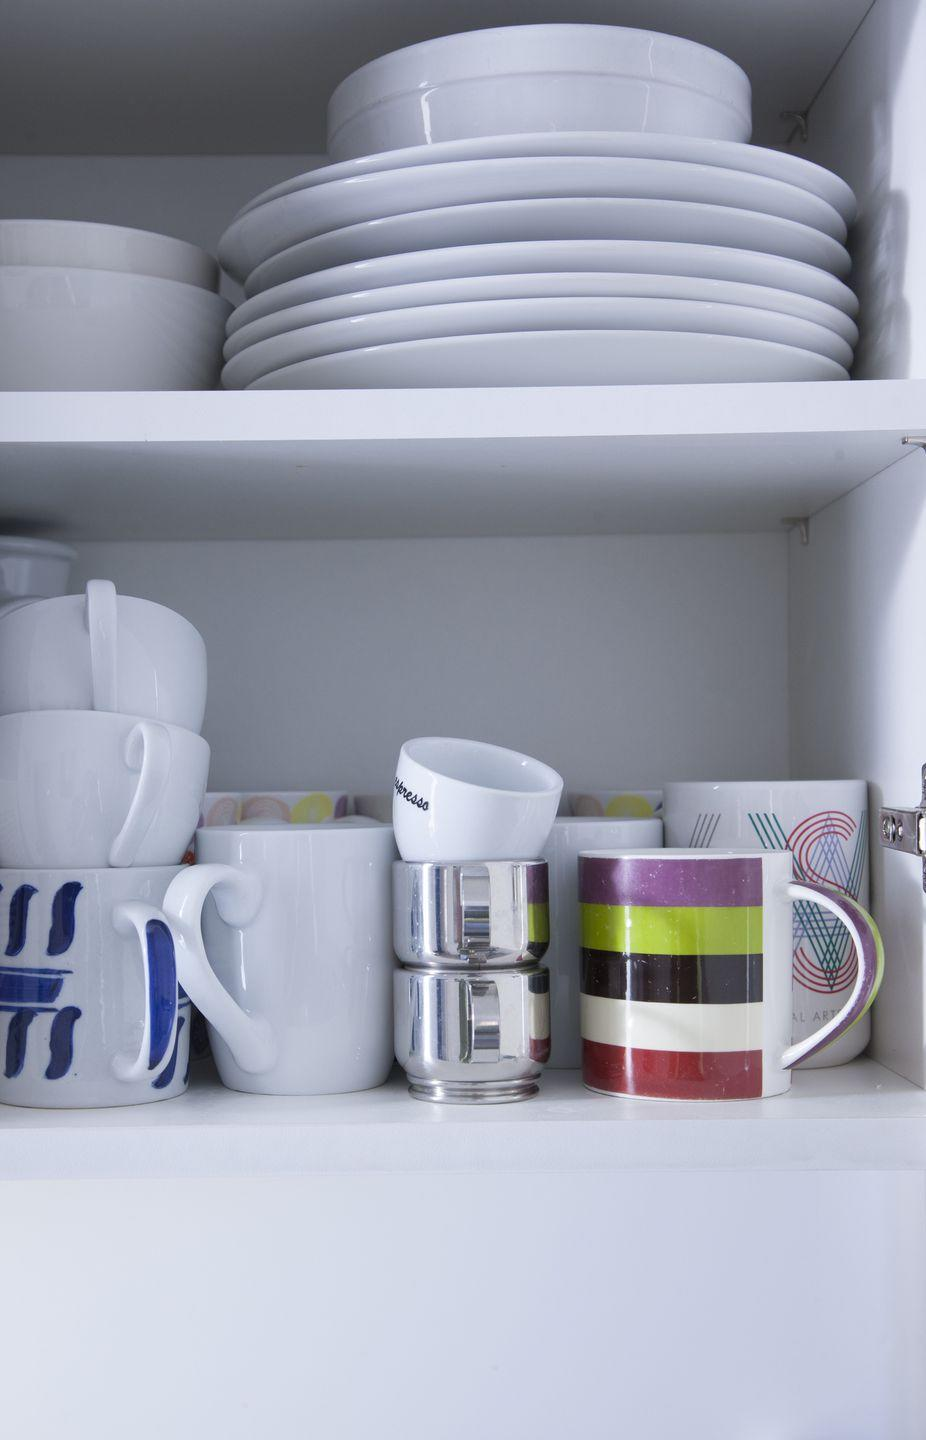 """<p>These are always given as gifts, so it's likely that you have more than there are people in your home. Keep your favorites and donate the rest. Once you pare down, here are a few ways to <a href=""""https://www.goodhousekeeping.com/home/organizing/g3497/how-to-organize-coffee-cups/ """" rel=""""nofollow noopener"""" target=""""_blank"""" data-ylk=""""slk:keep your collection organized"""" class=""""link rapid-noclick-resp"""">keep your collection organized</a>.</p>"""